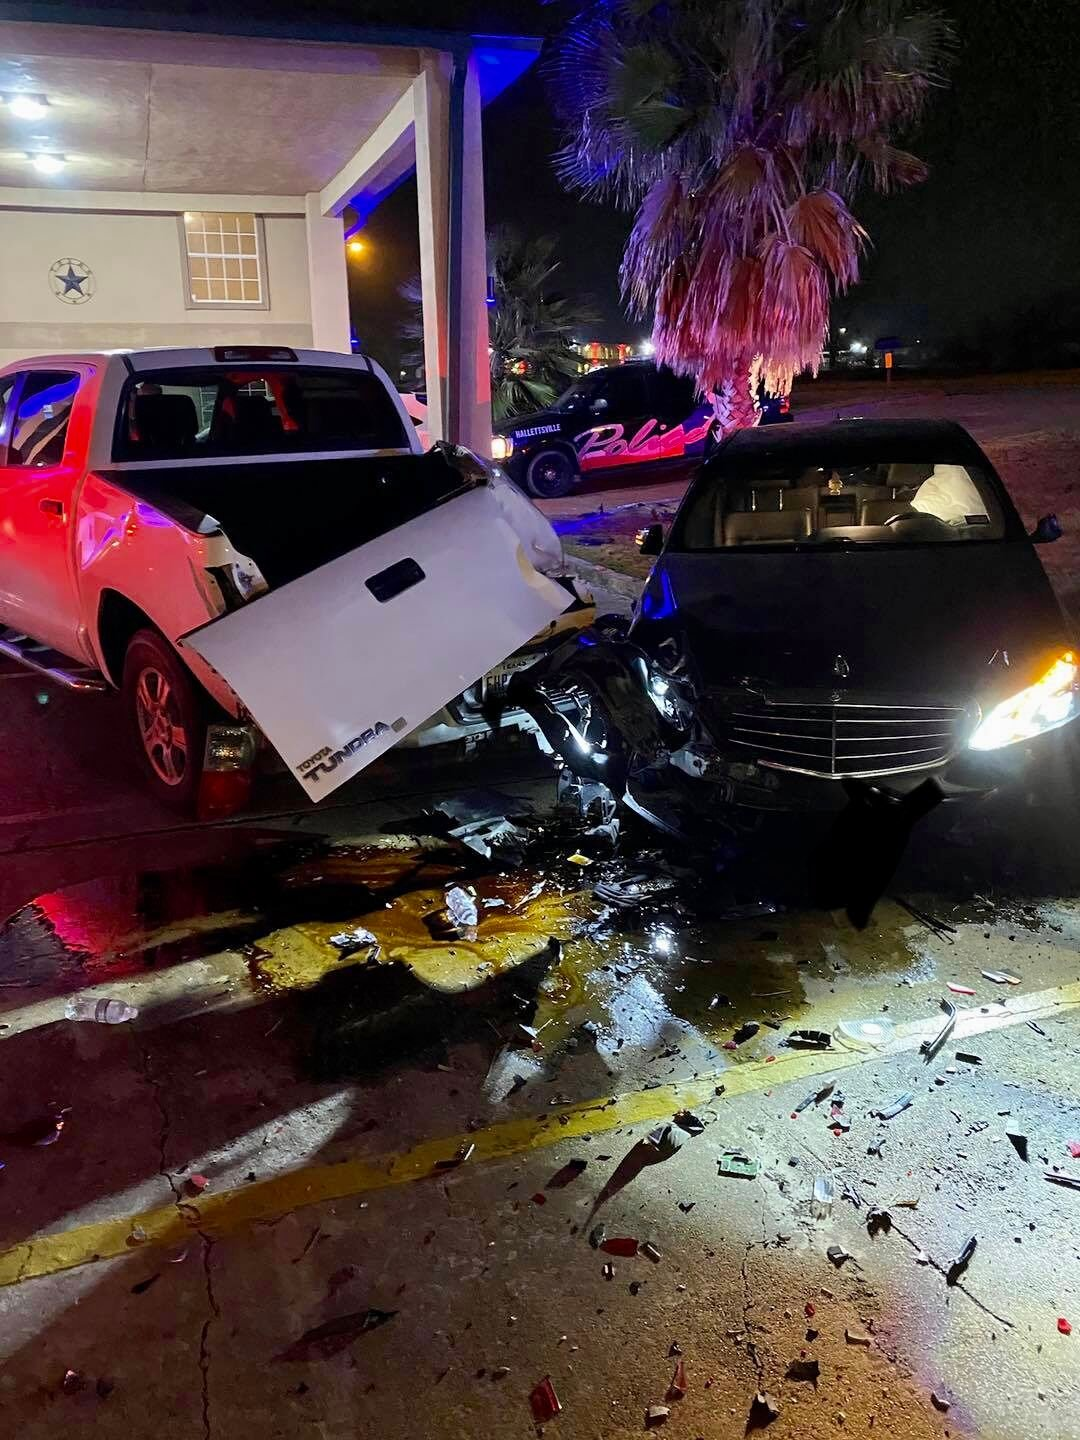 2-vehicle crash in Hallettsville sends one to hospital with minor injuries